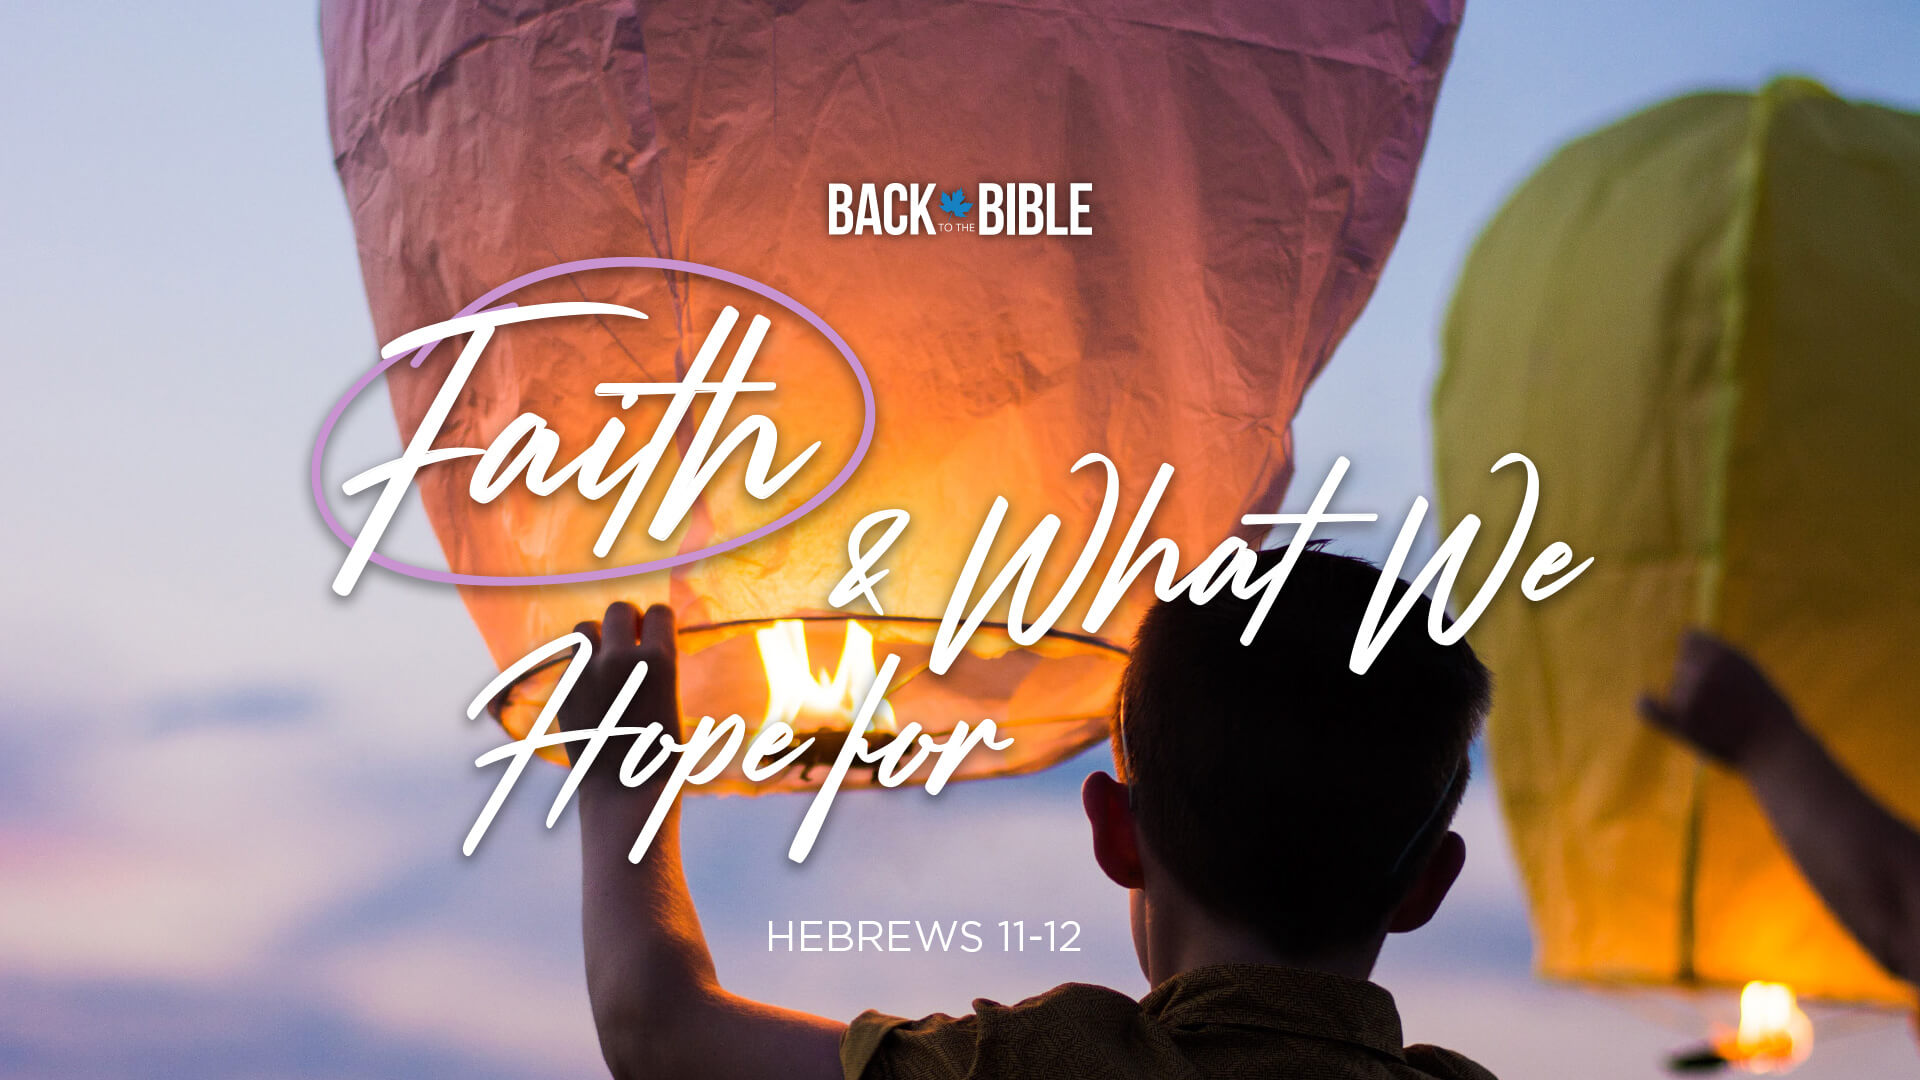 Faith and What We Hope For - Back to the Bible Canada